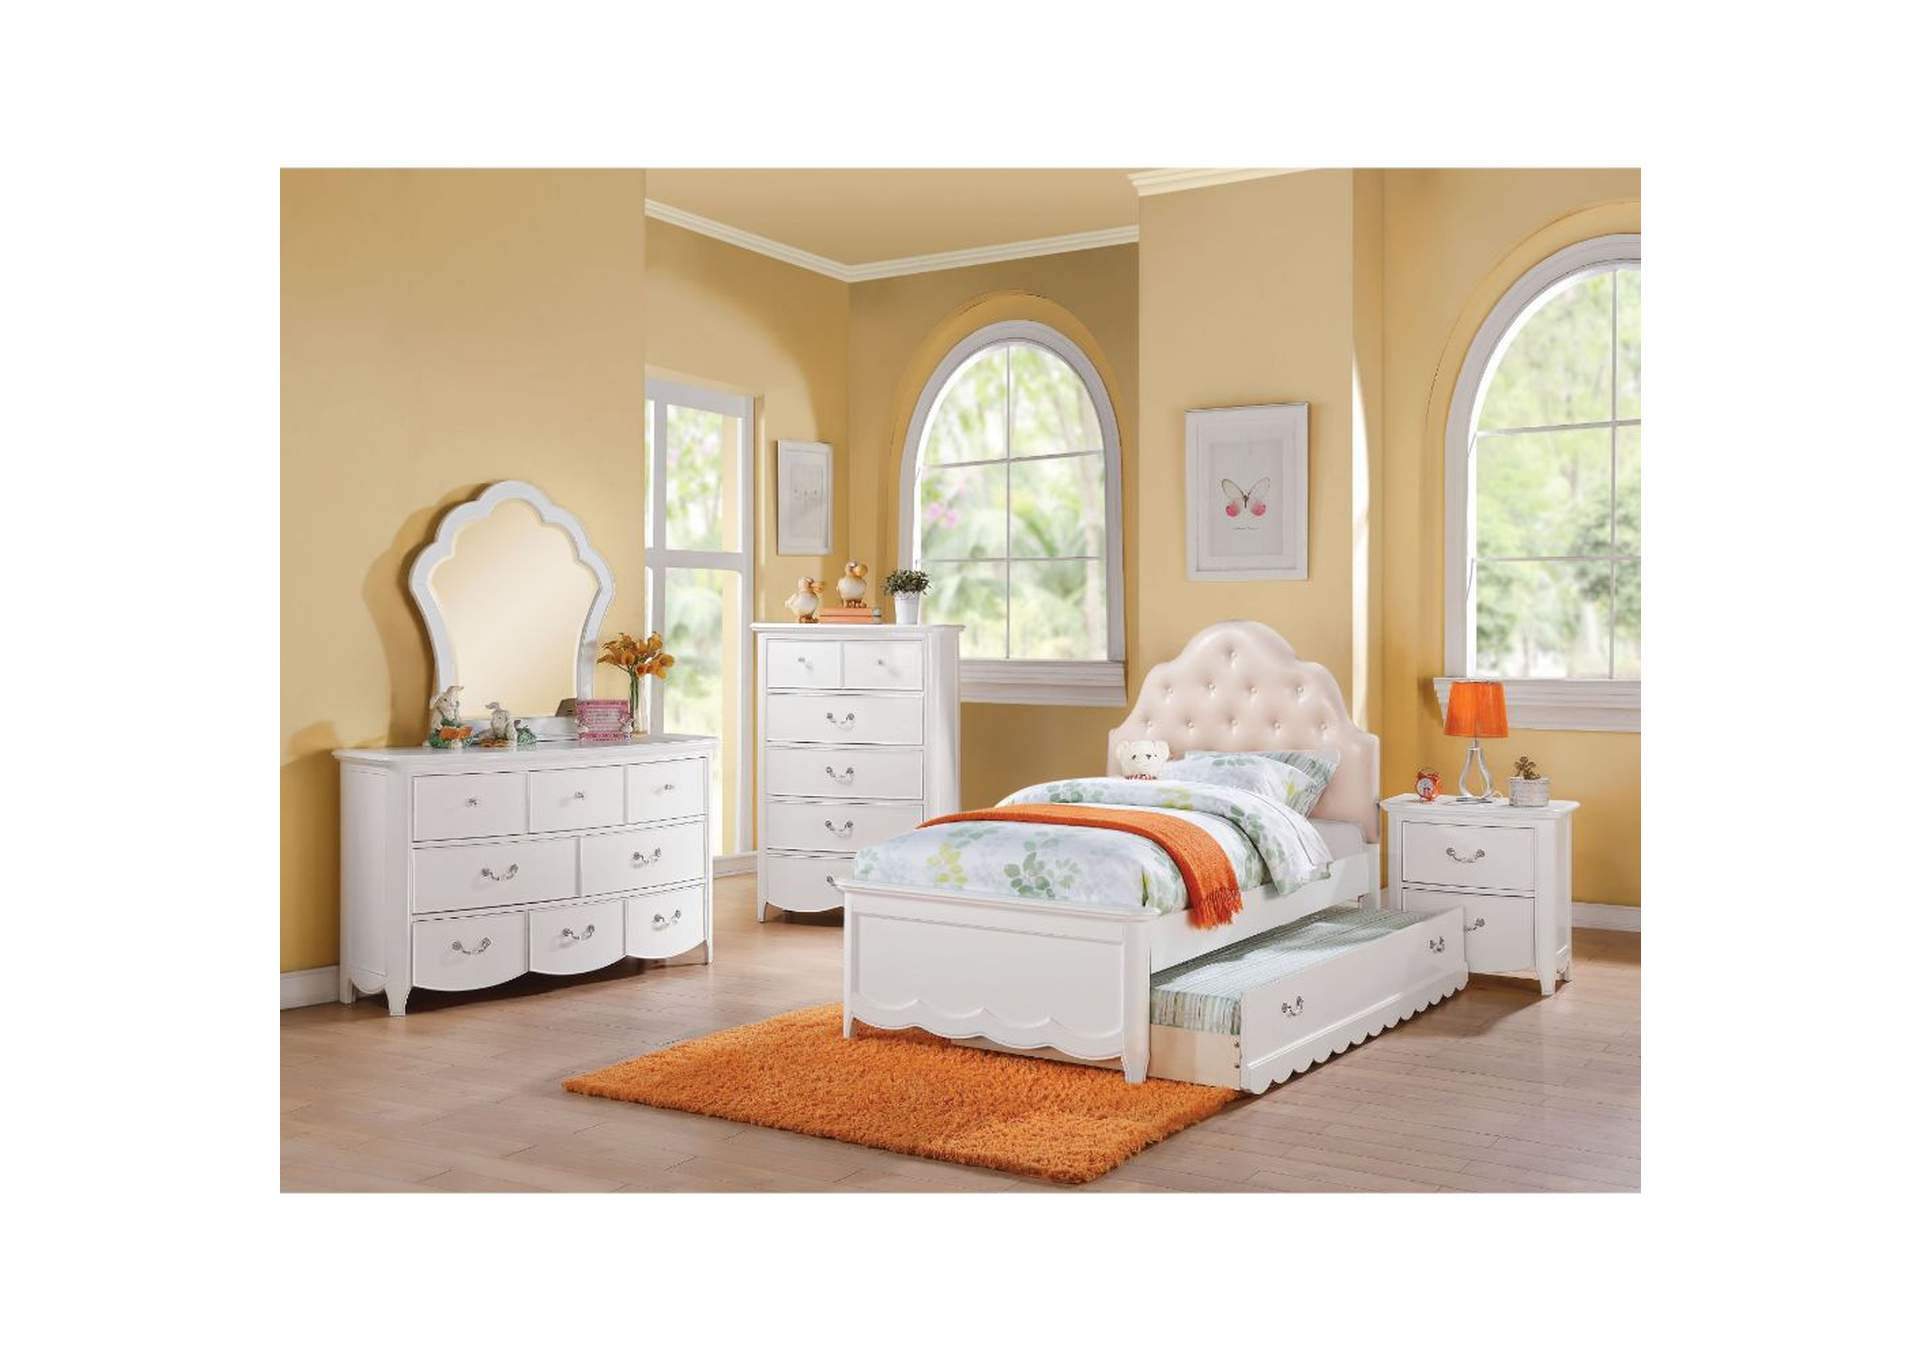 Cecilie Light Pink PU & White Twin Bed,Acme